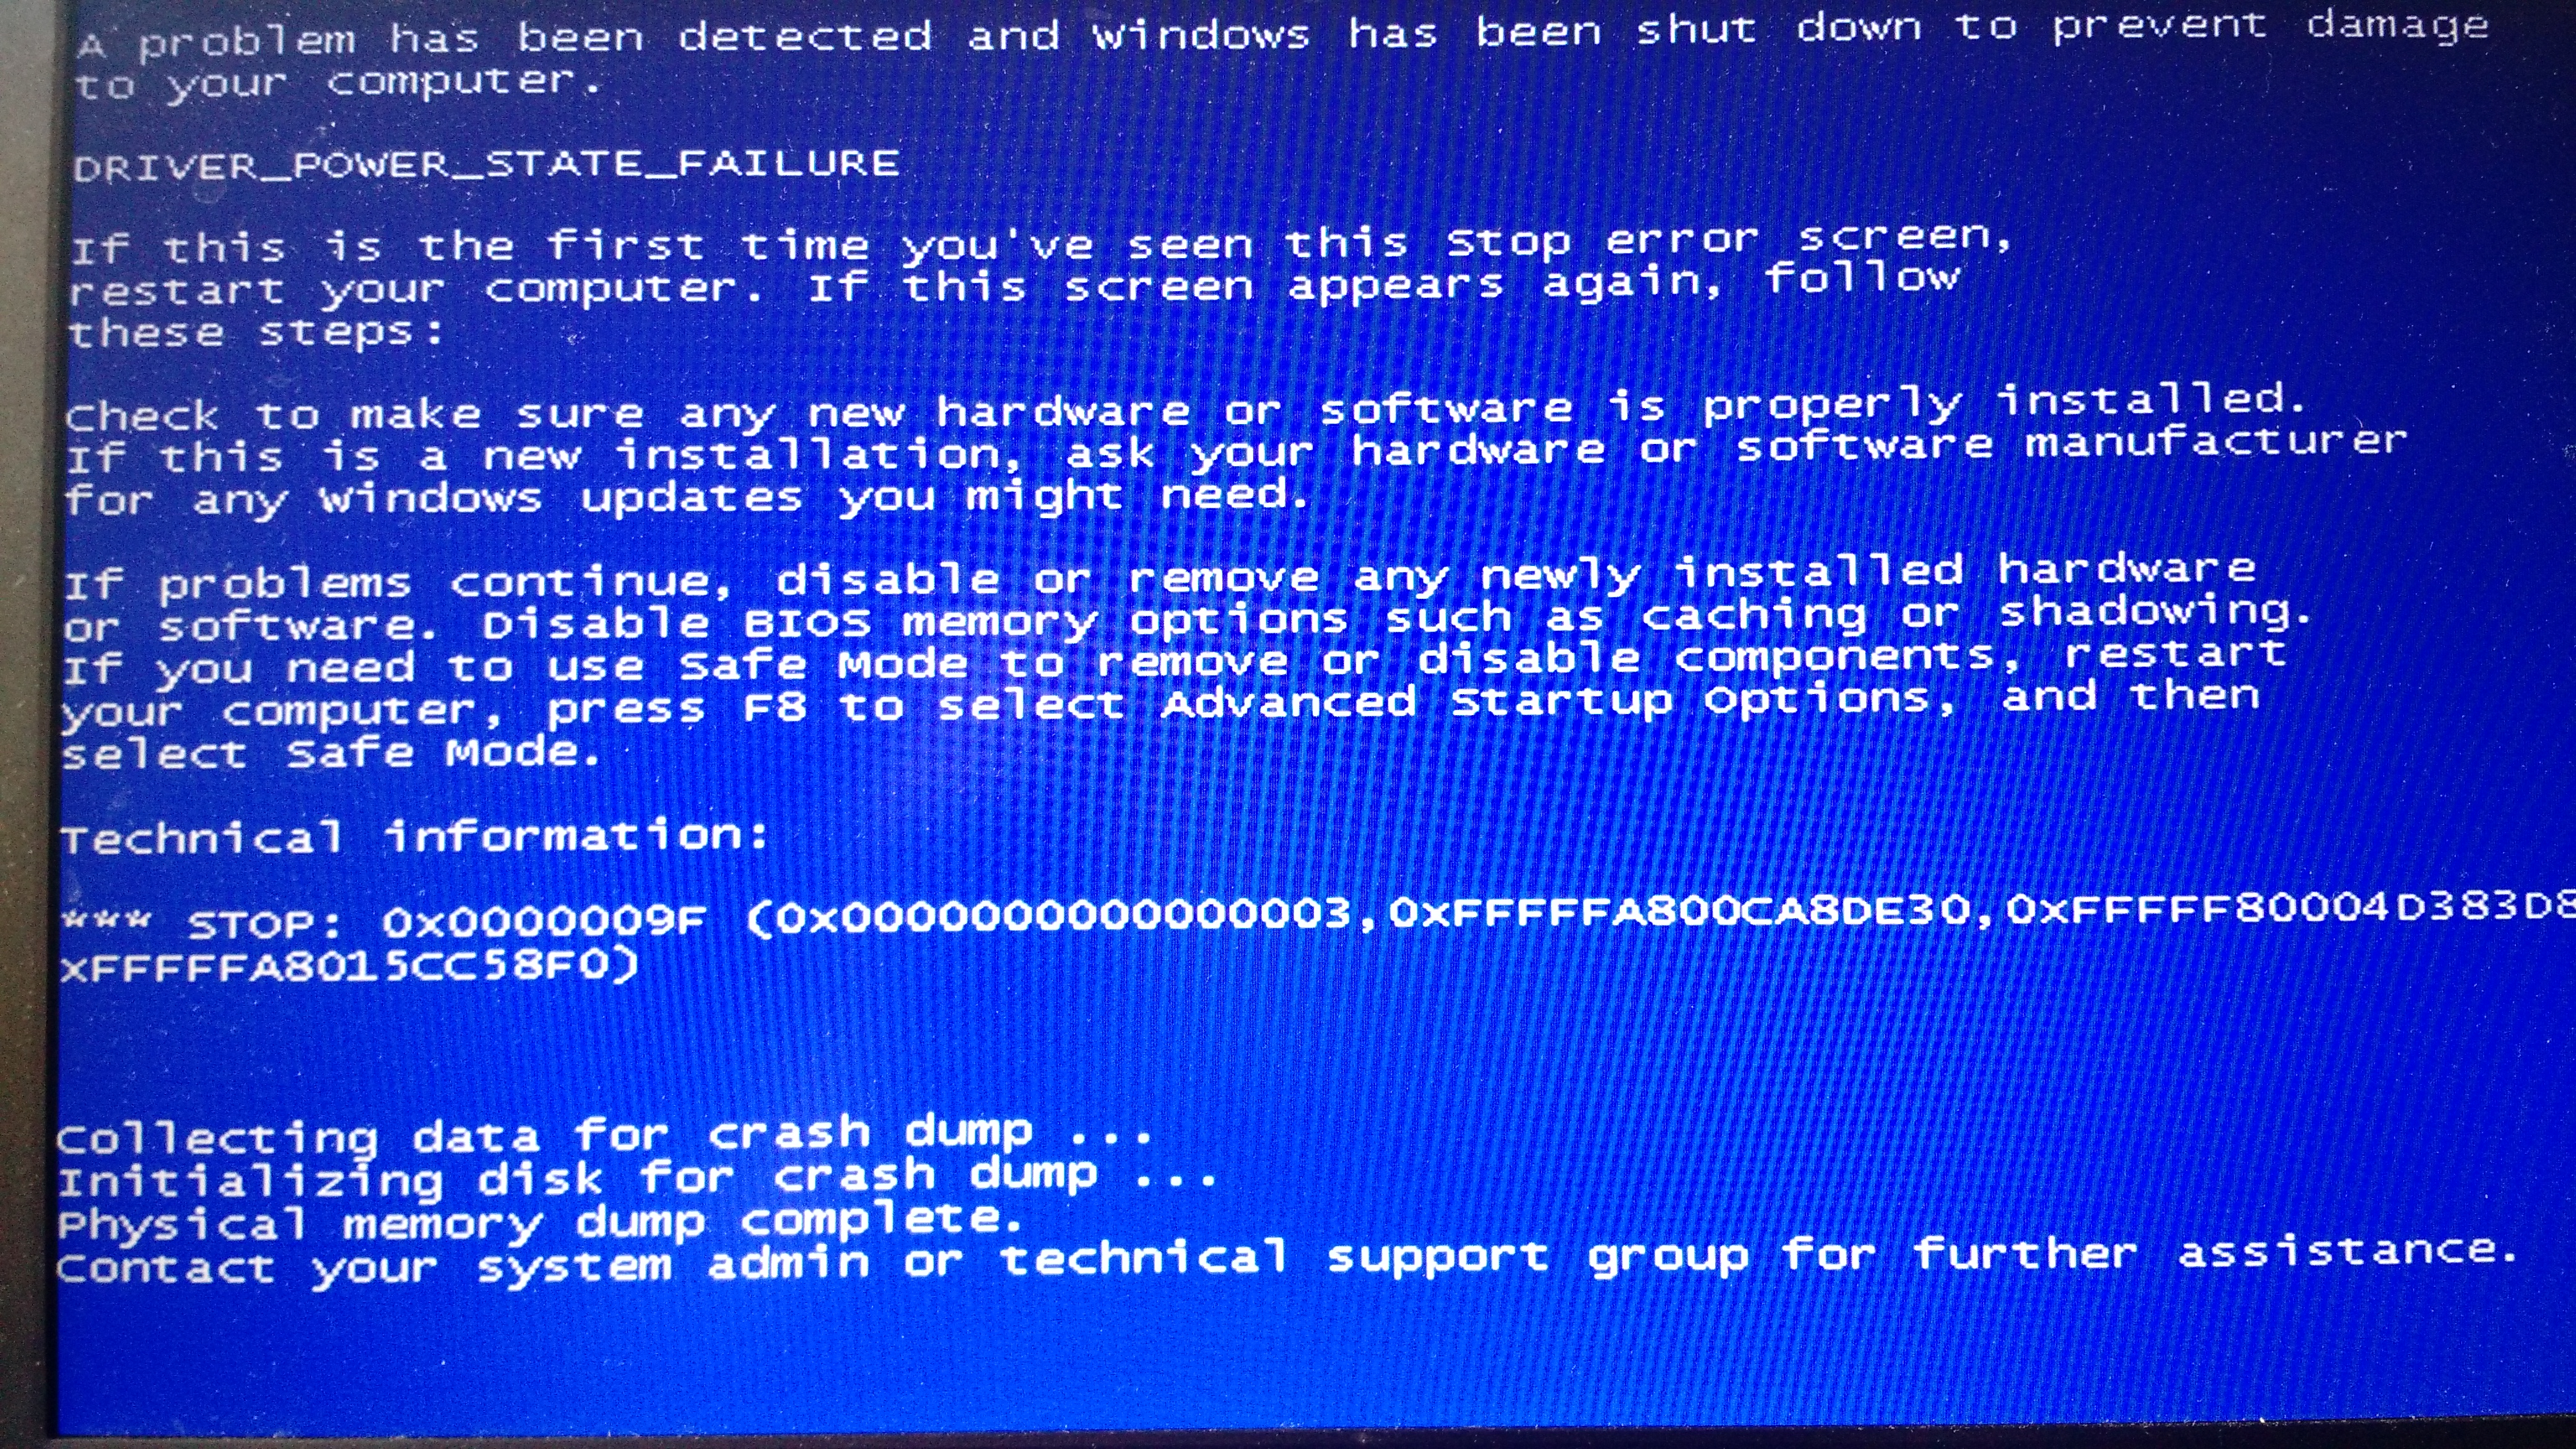 Windows 7 blue screen shortly after waking from hibernation